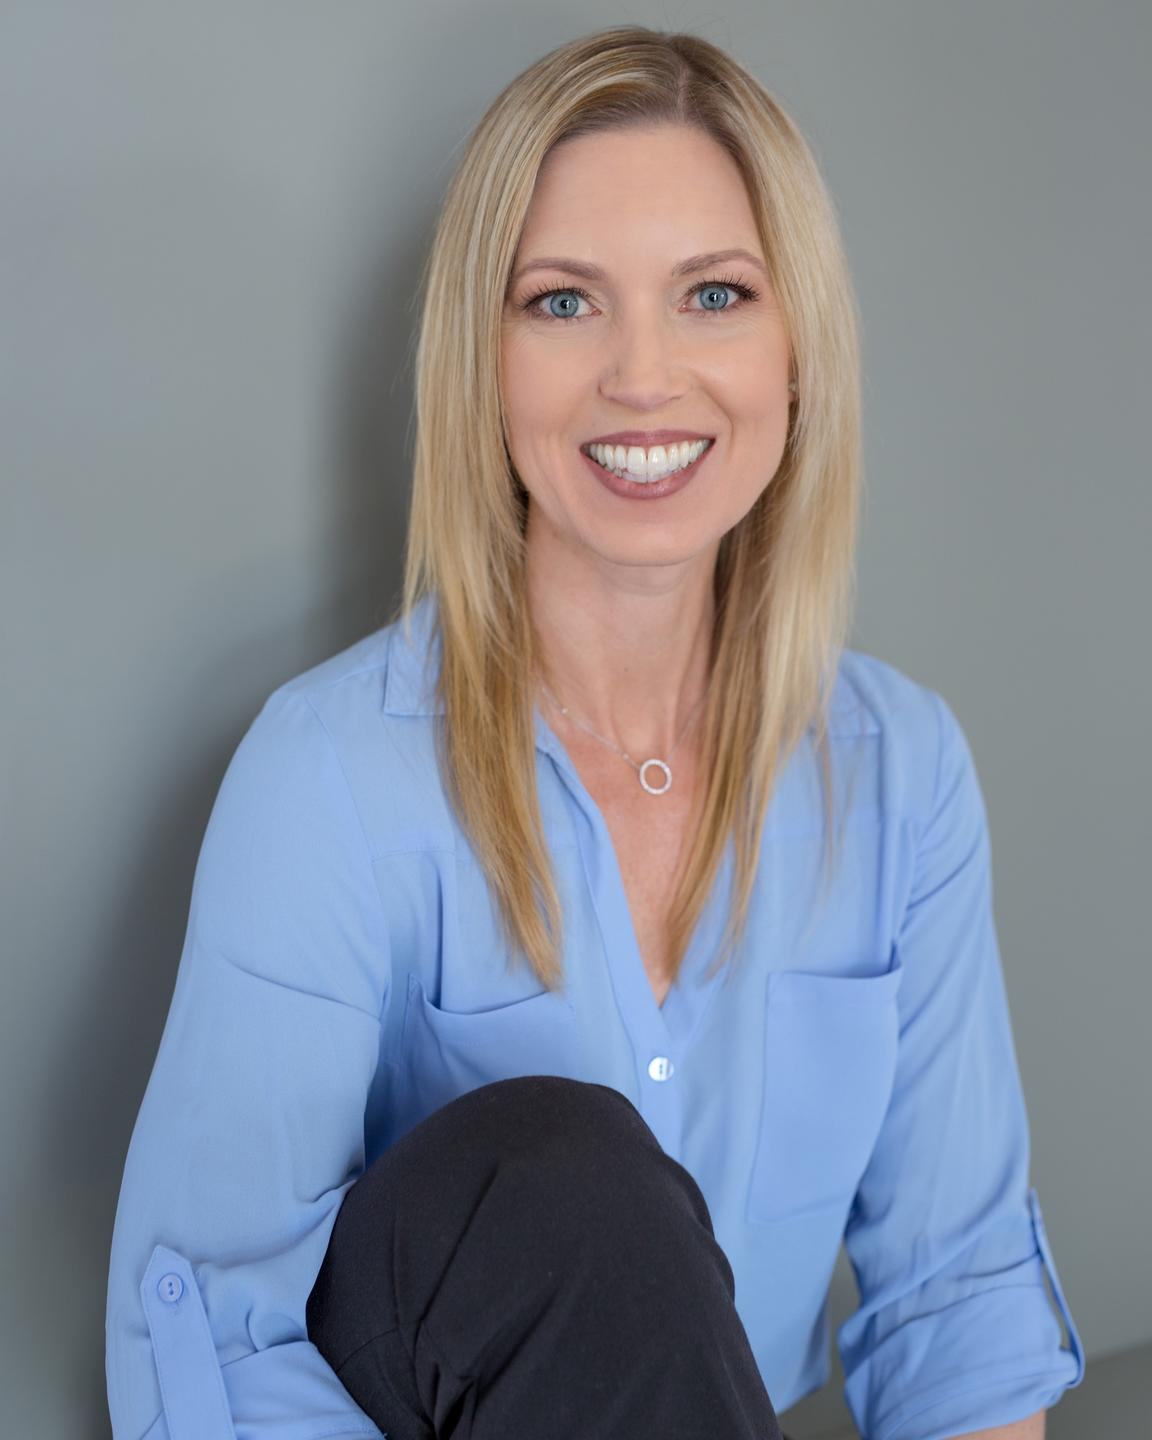 Angela Robertson founder of The Fit Massage Therapist